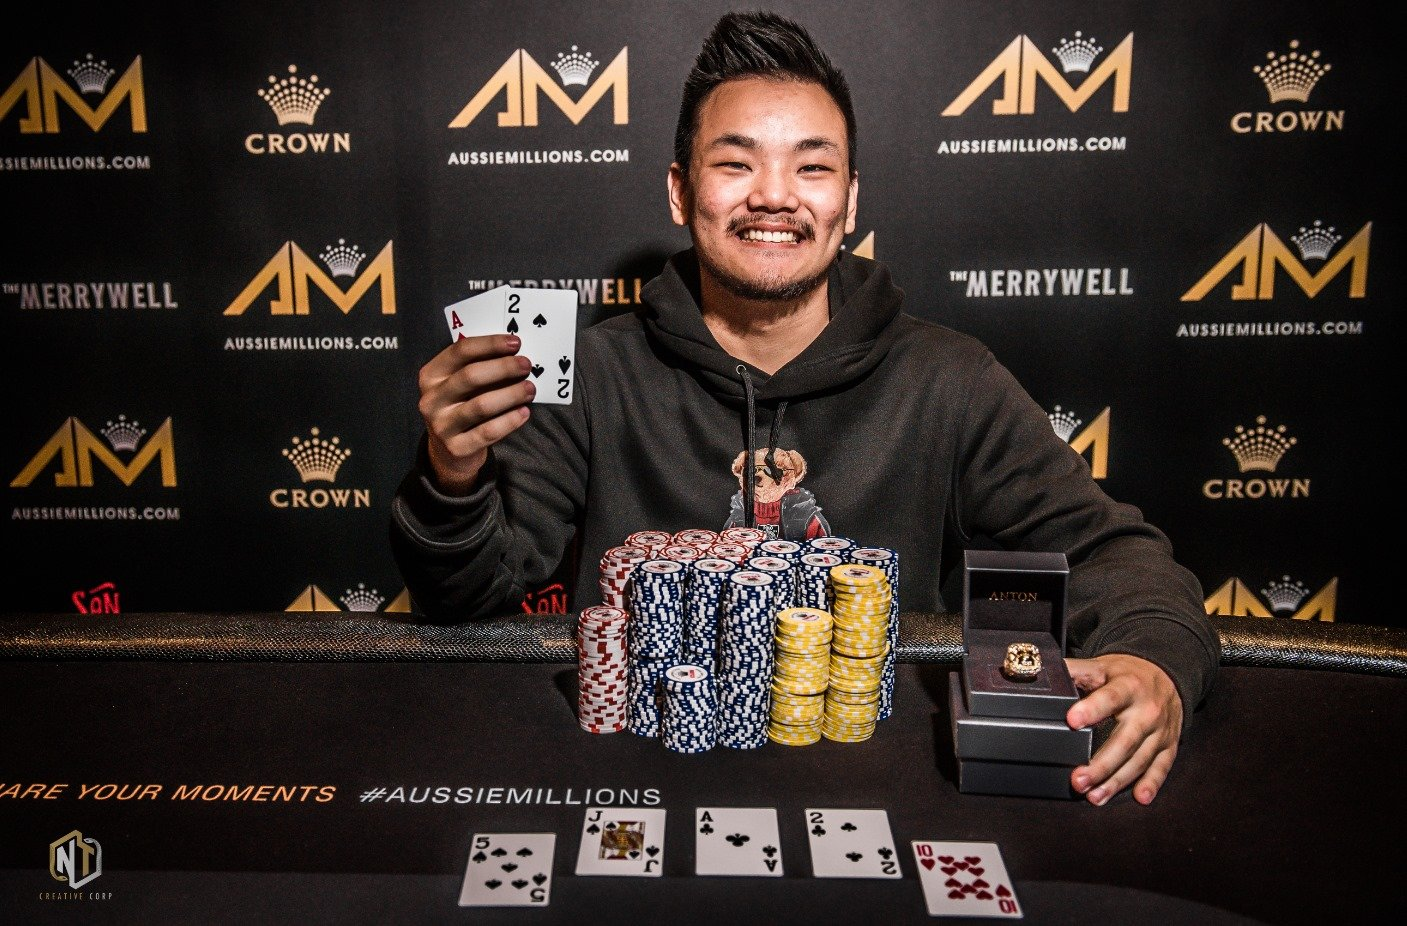 Aussie Millions: Jo Snell seizes victory in opening event; Matthew Edwards wins Pot Limit Omaha Event